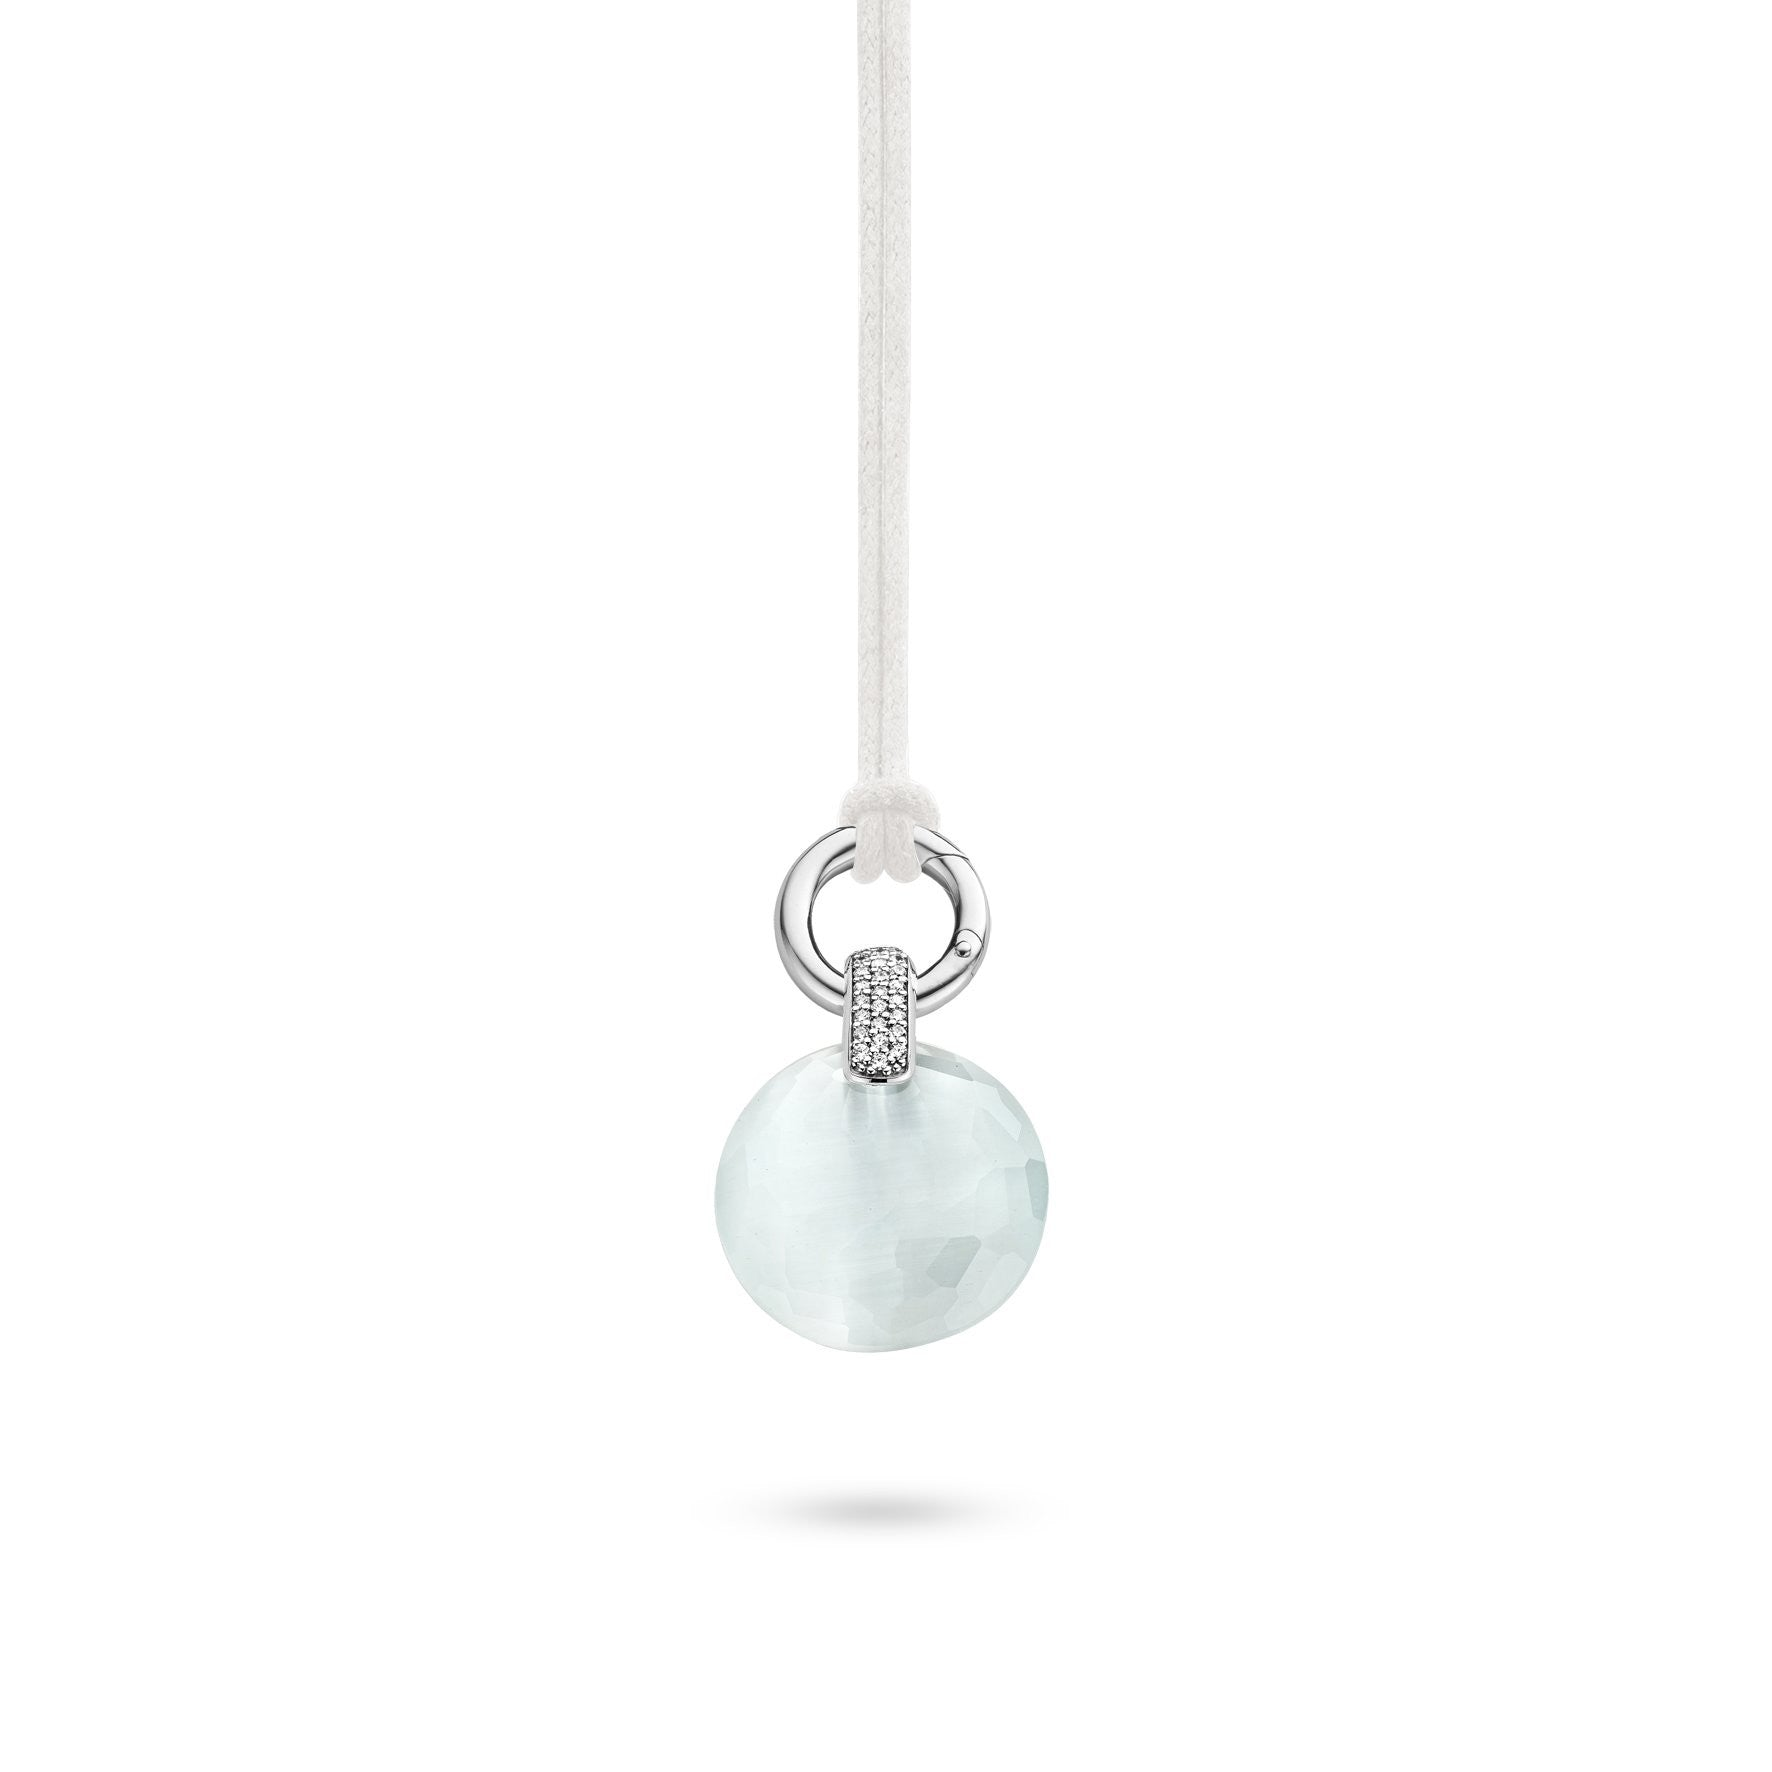 Ti Sento Pendant Silver With White And Light Blue Cubic Zirconia Round